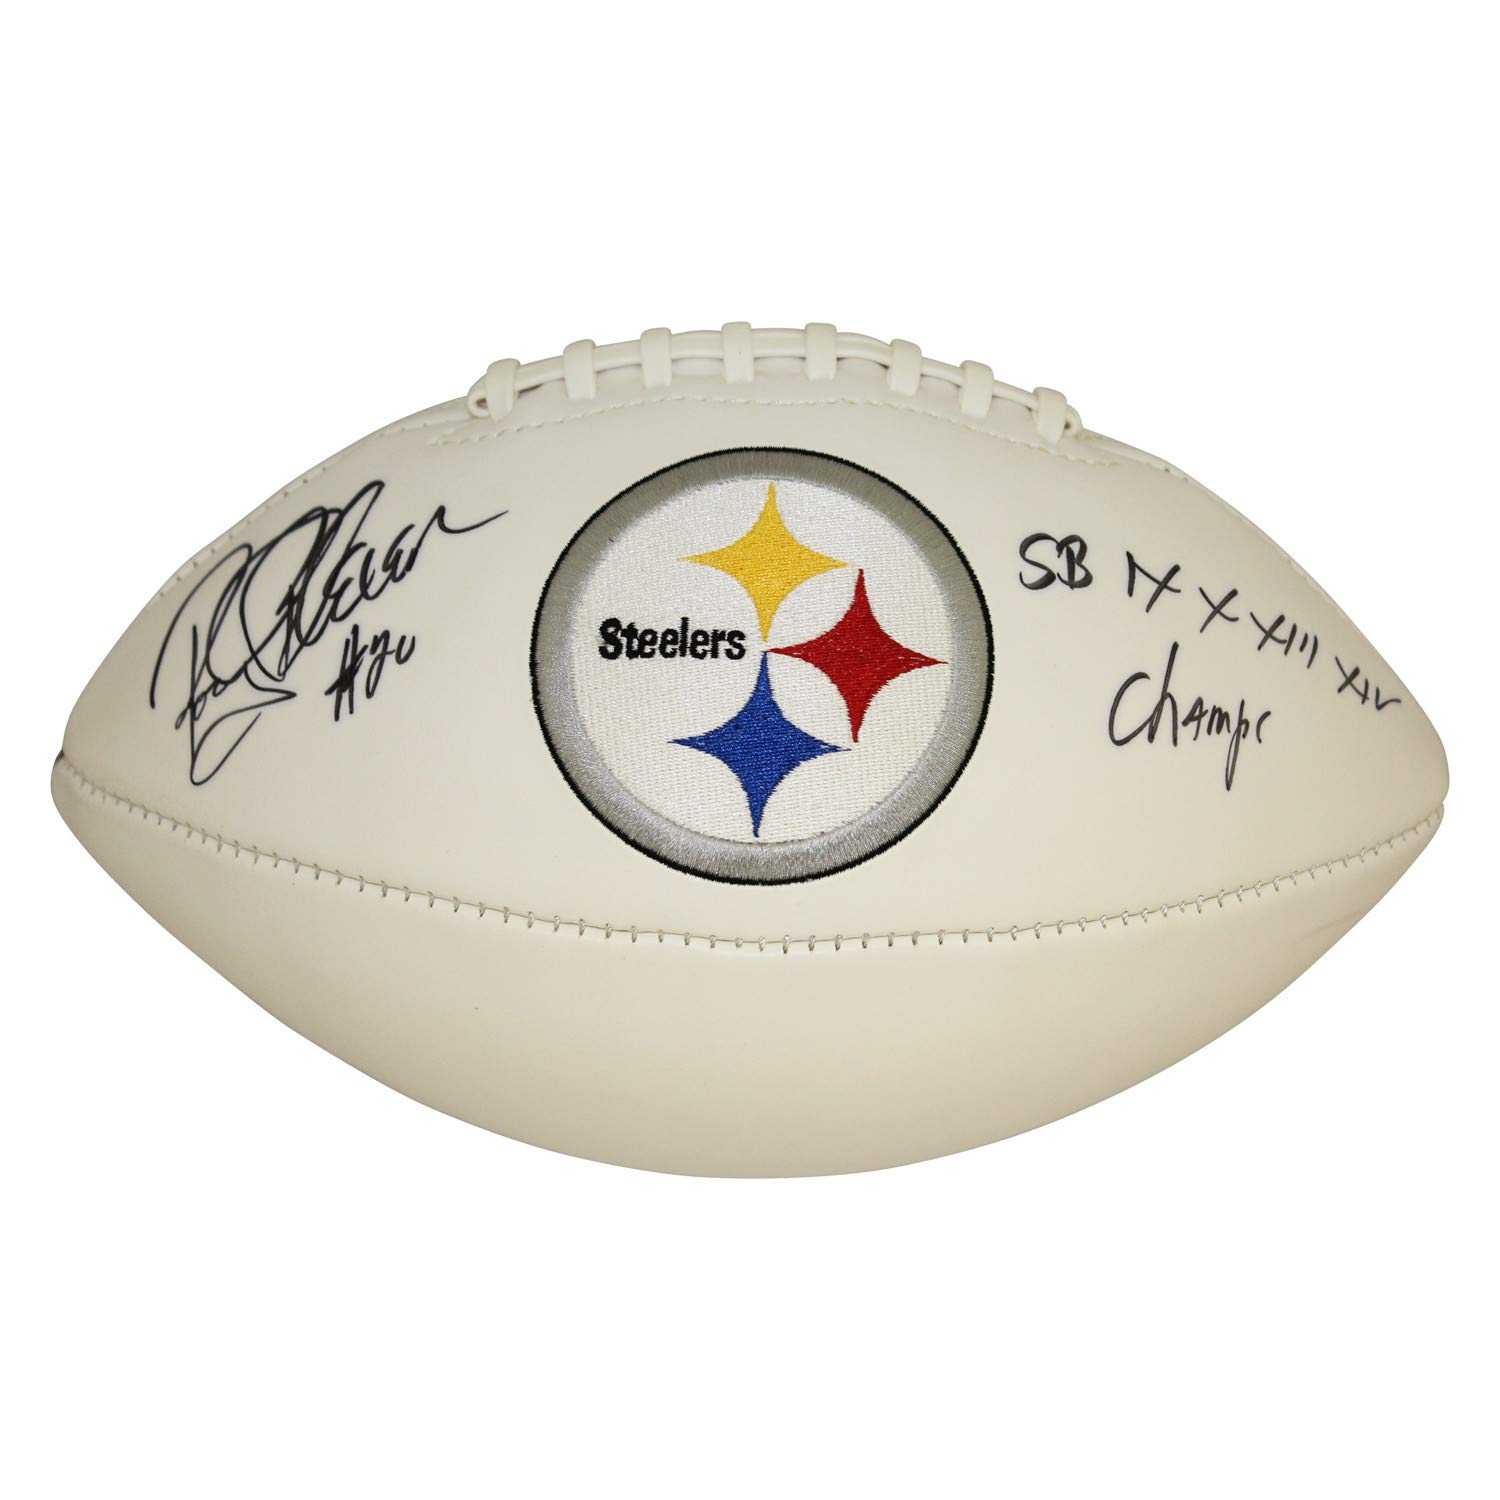 Rocky Bleier Pittsburgh Steelers Autographed Signed White Panel Logo Football - JSA Authentic